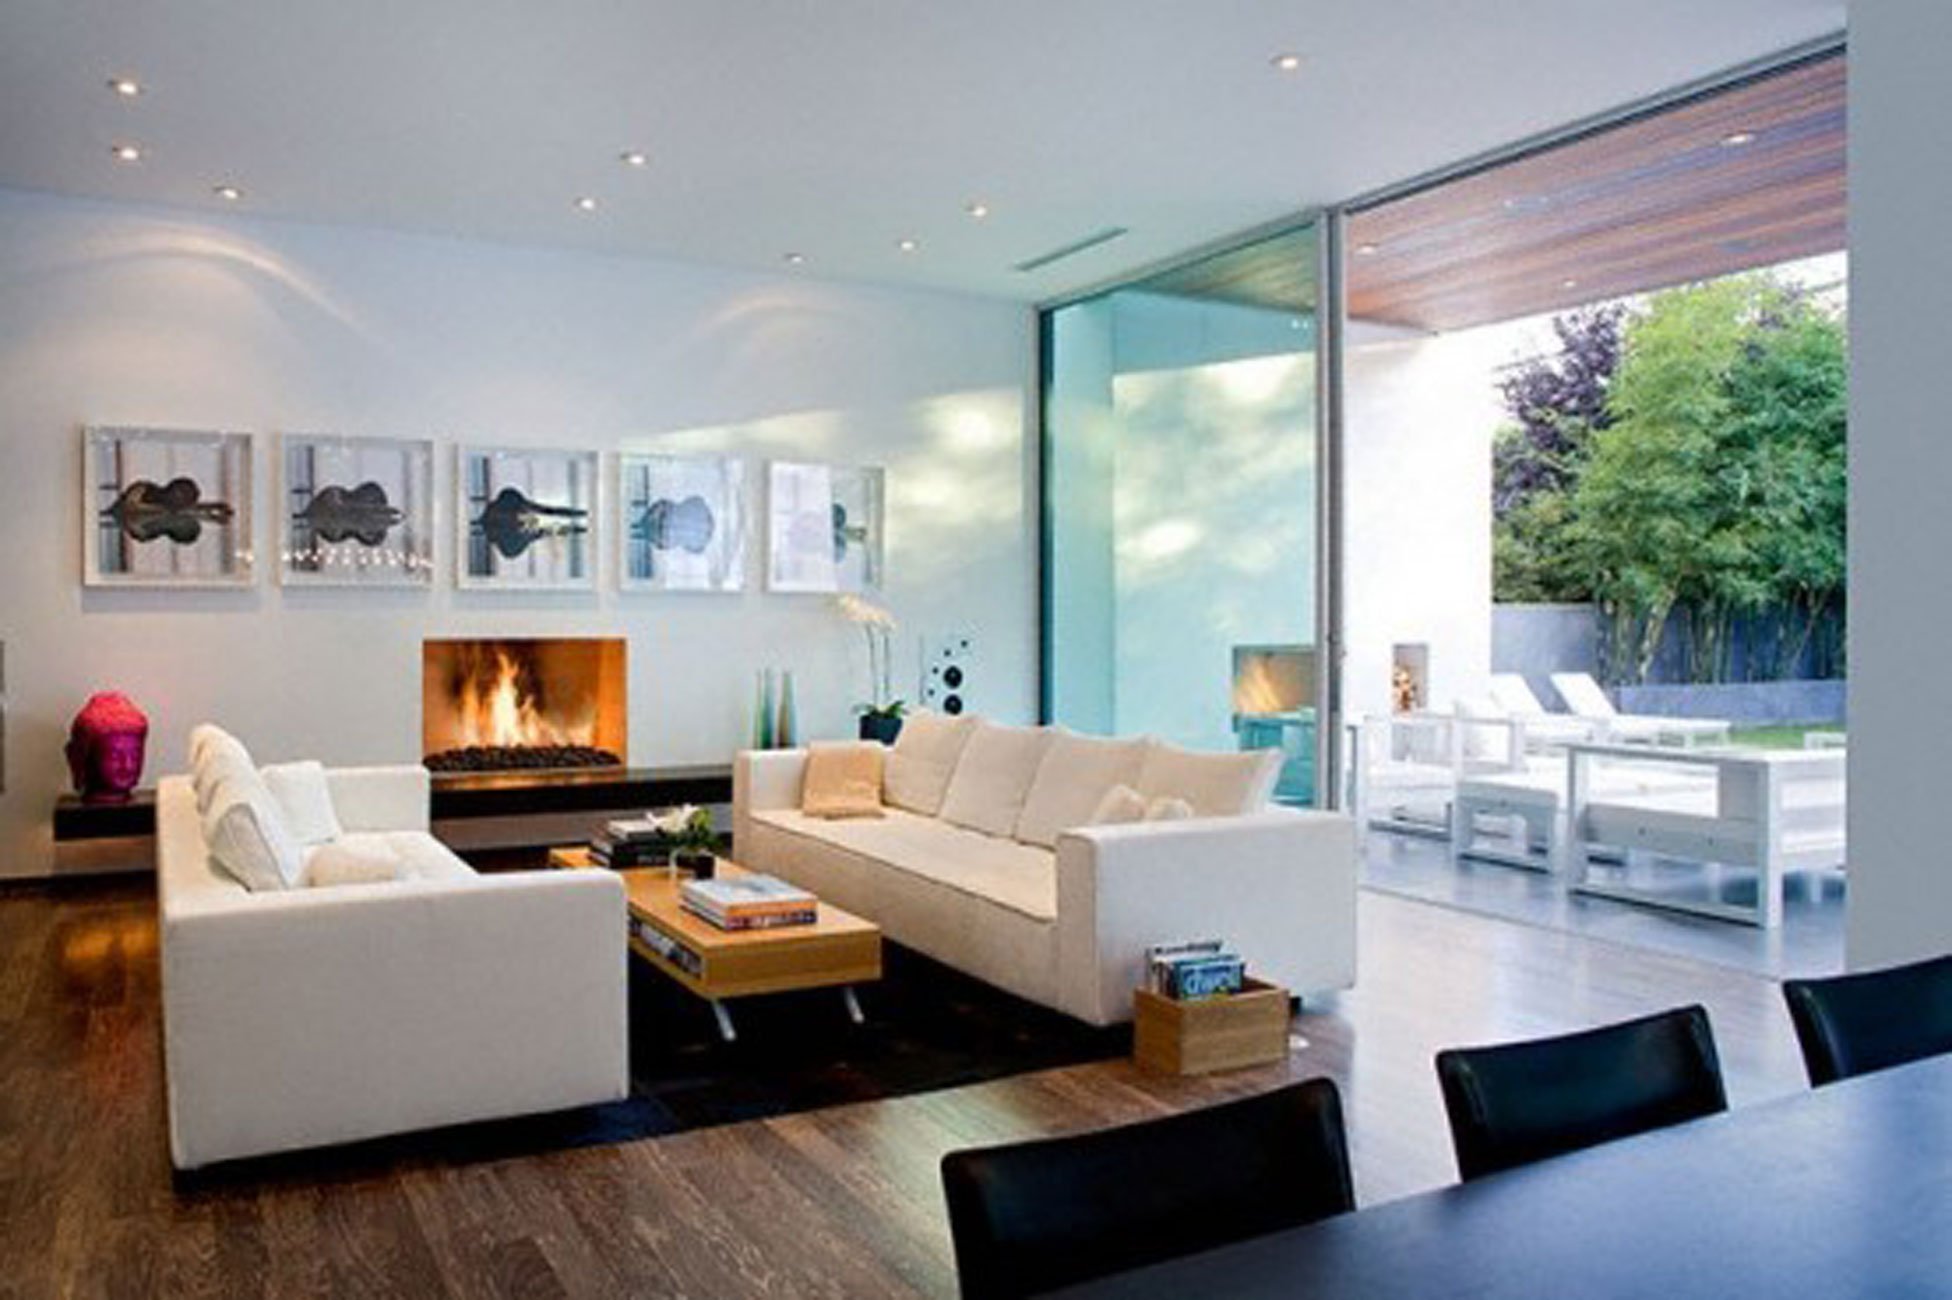 Amazing Modern Interior Design in Family Room with White Sofas and Low Table near Stunning Fireplace